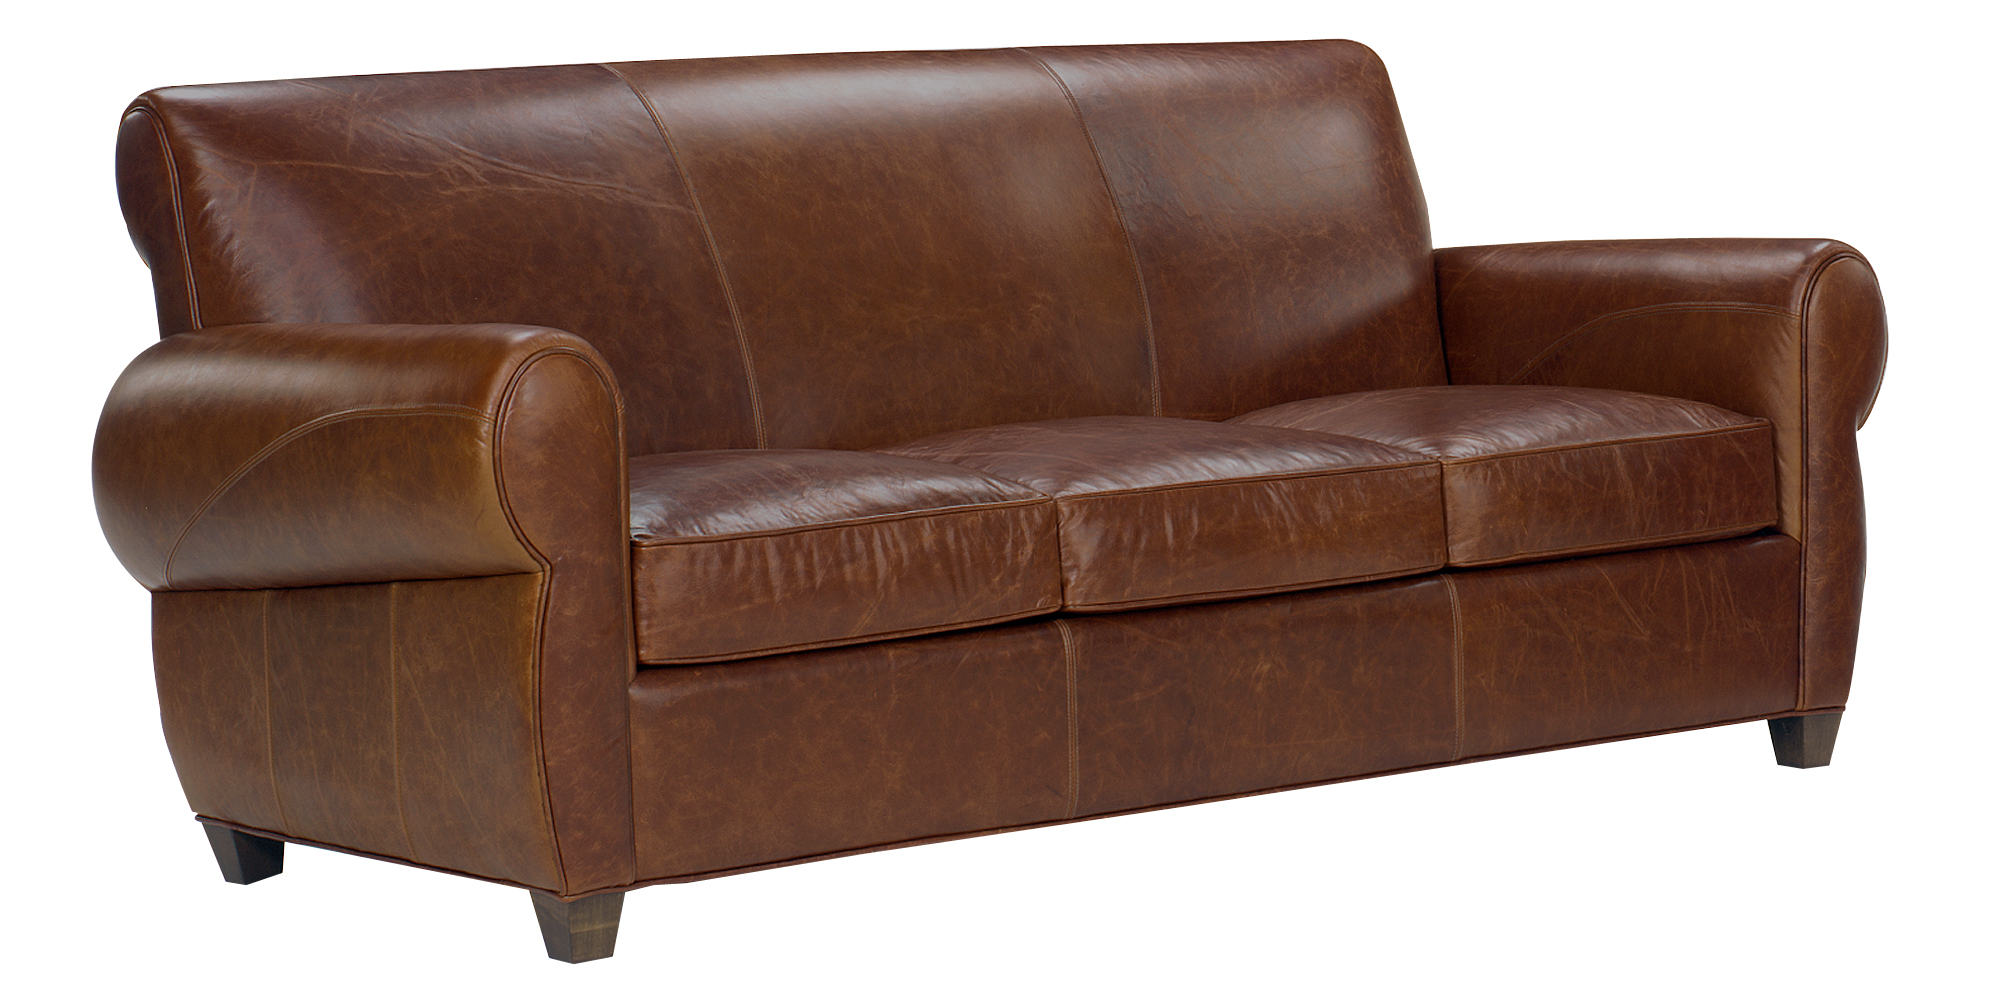 Tight back rustic lodge leather furniture sofa collection for Leather furniture